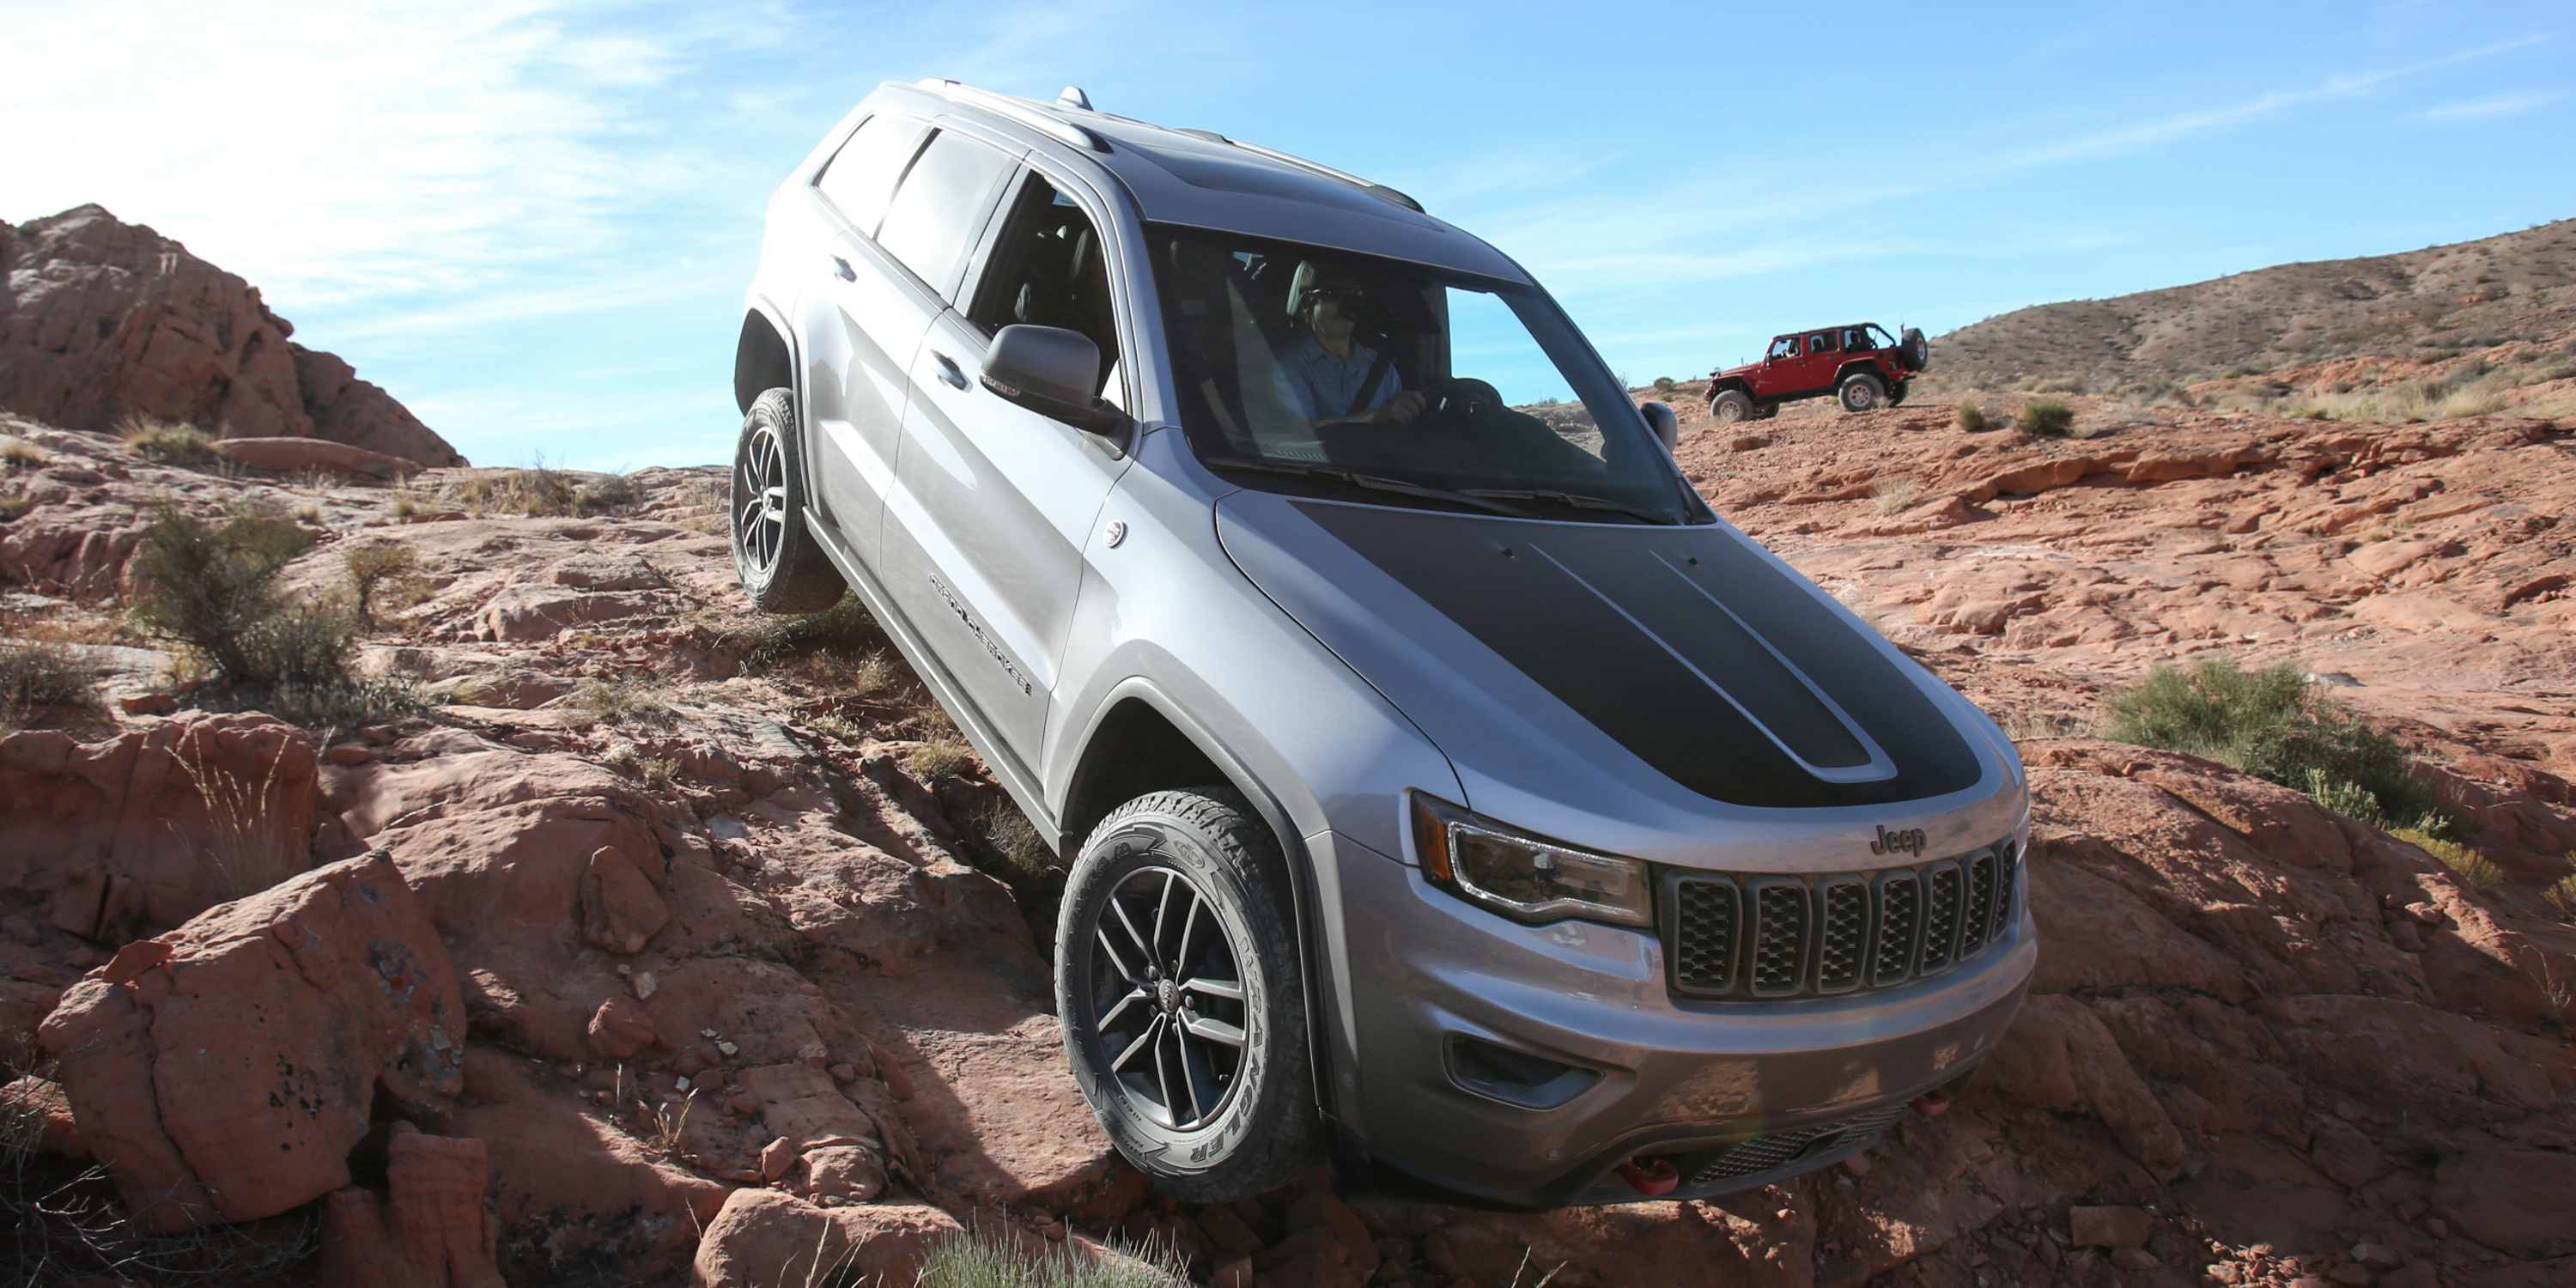 2017 jeep grand cherokee trailhawk review caradvice. Black Bedroom Furniture Sets. Home Design Ideas